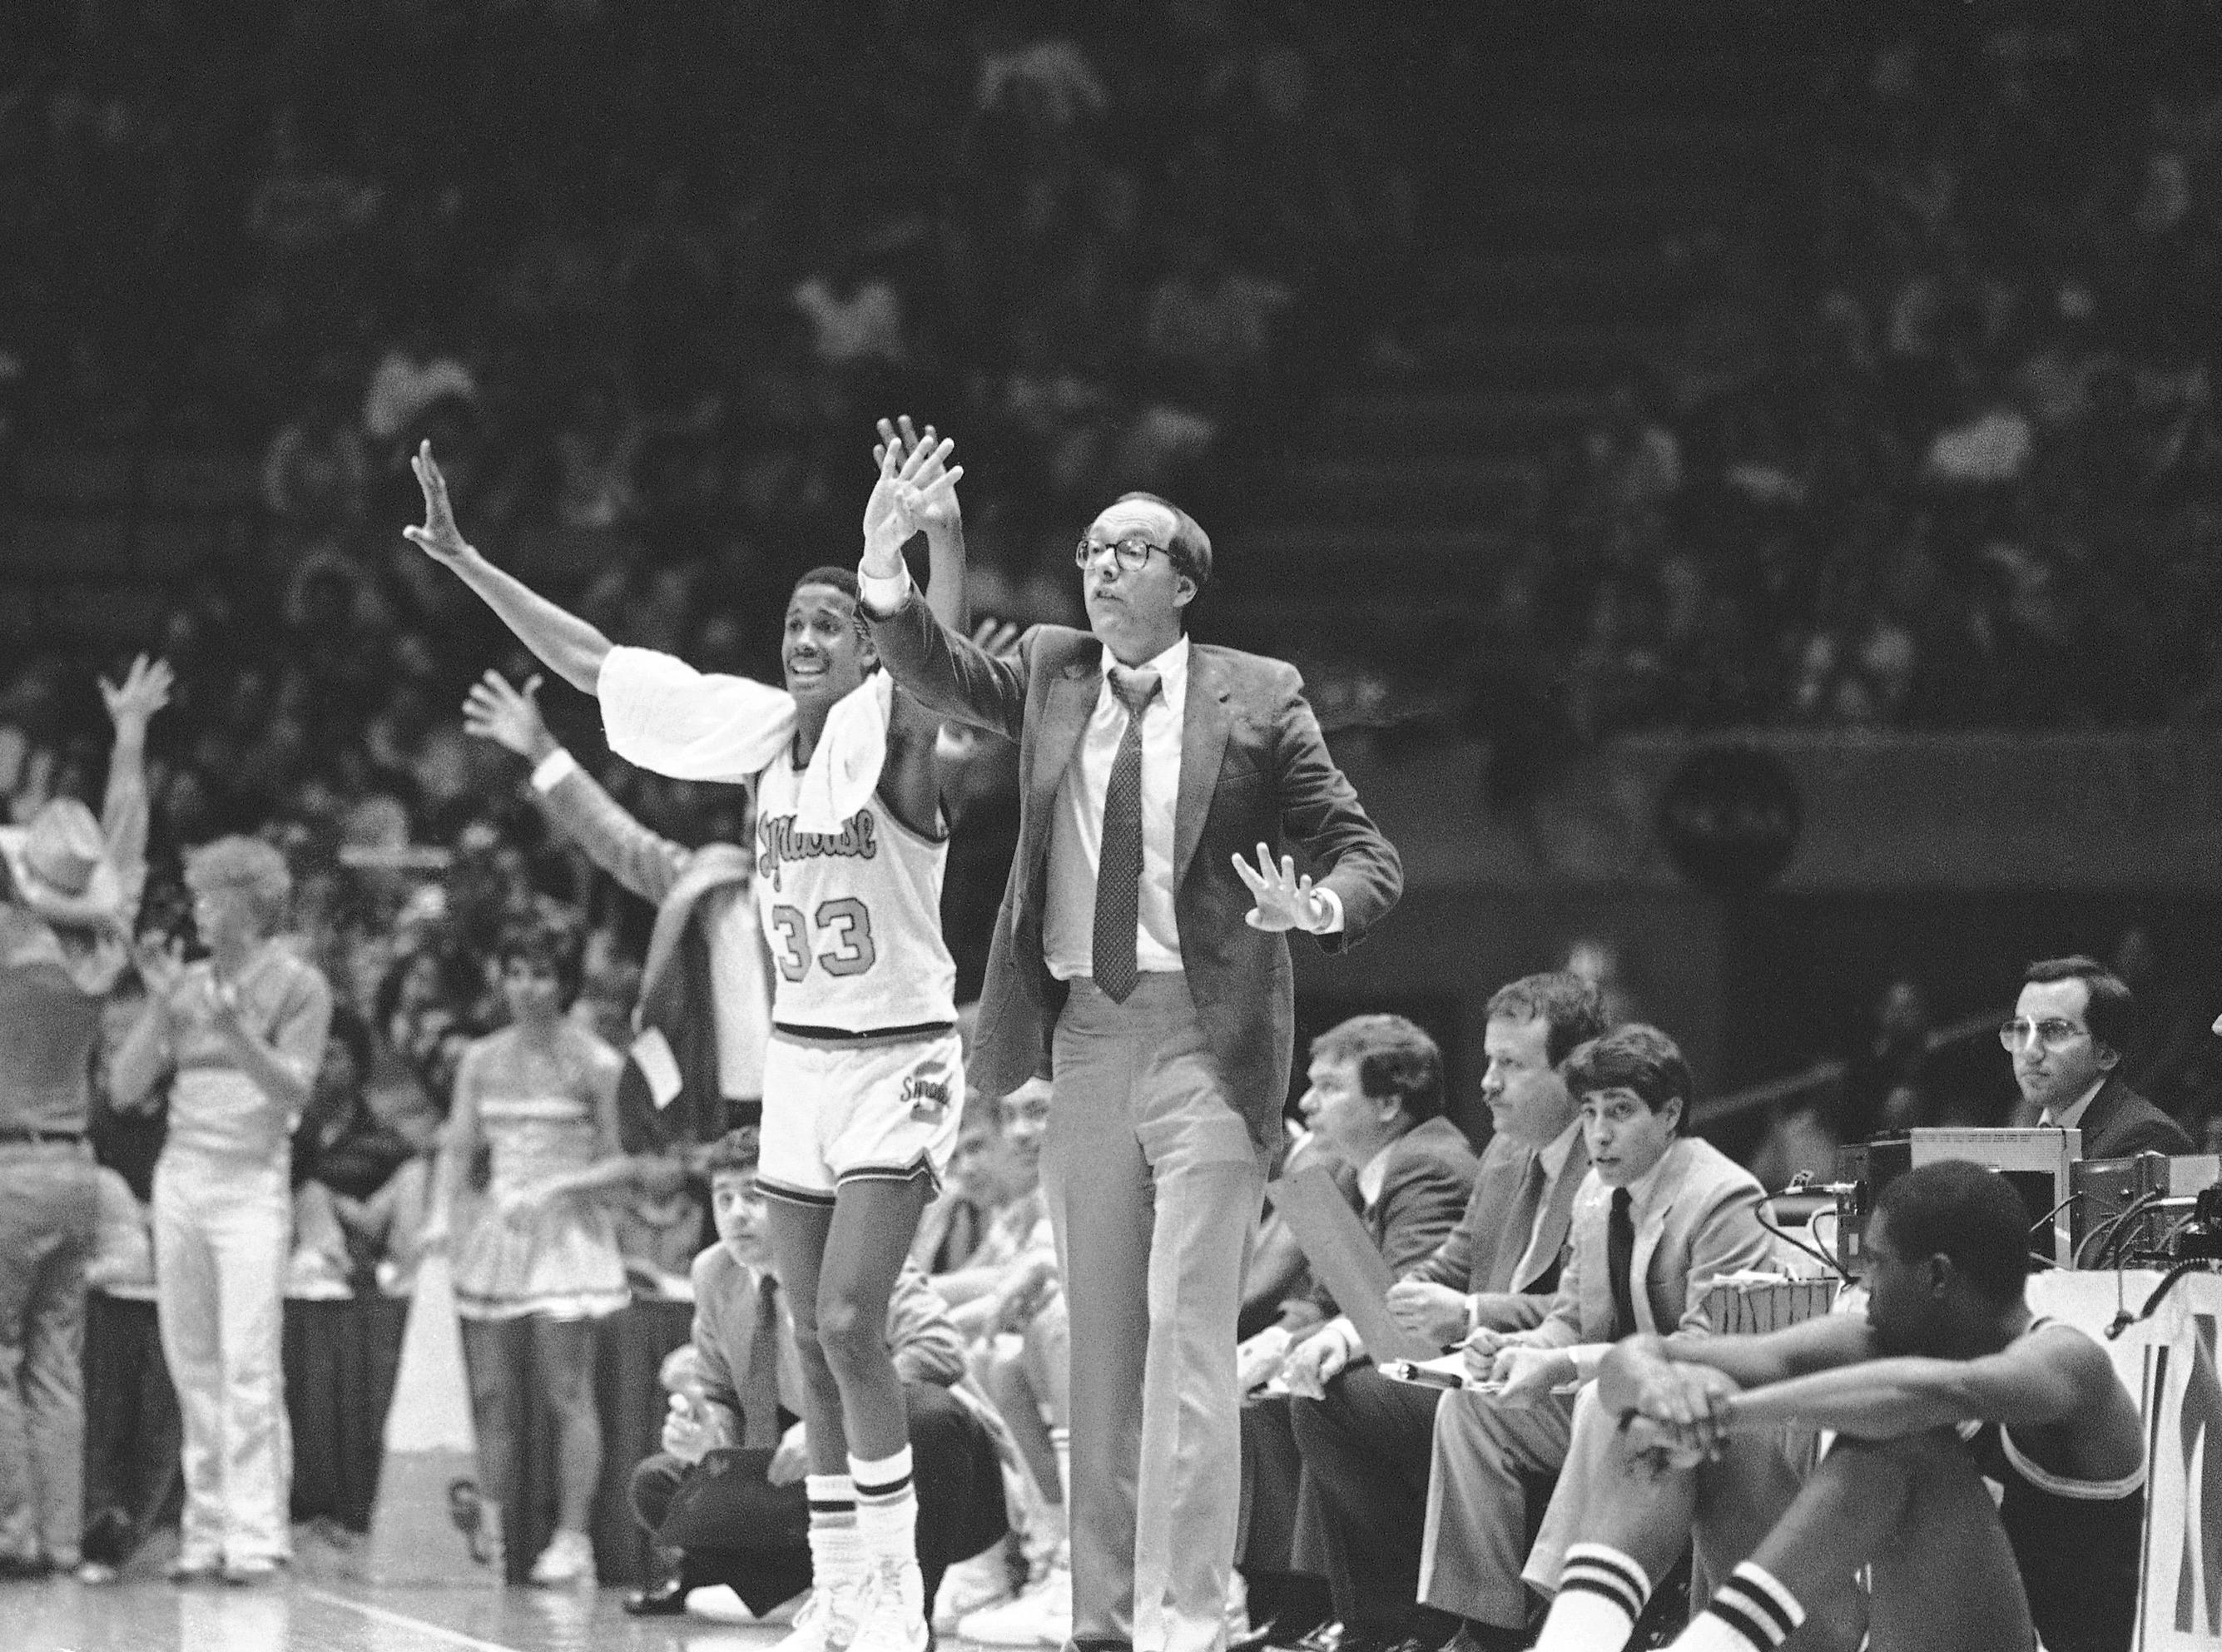 1983: Syracuse head coach Jim Boeheim, right, and Gene Waldron show their anxiety as their team makes last shot in their winning second round NCAA Championship Game against Virginia Commonwealth by a score of 78-63, Sunday, March 18, 1983, East Rutherford, N.J. (AP Photo/Mike Derer)